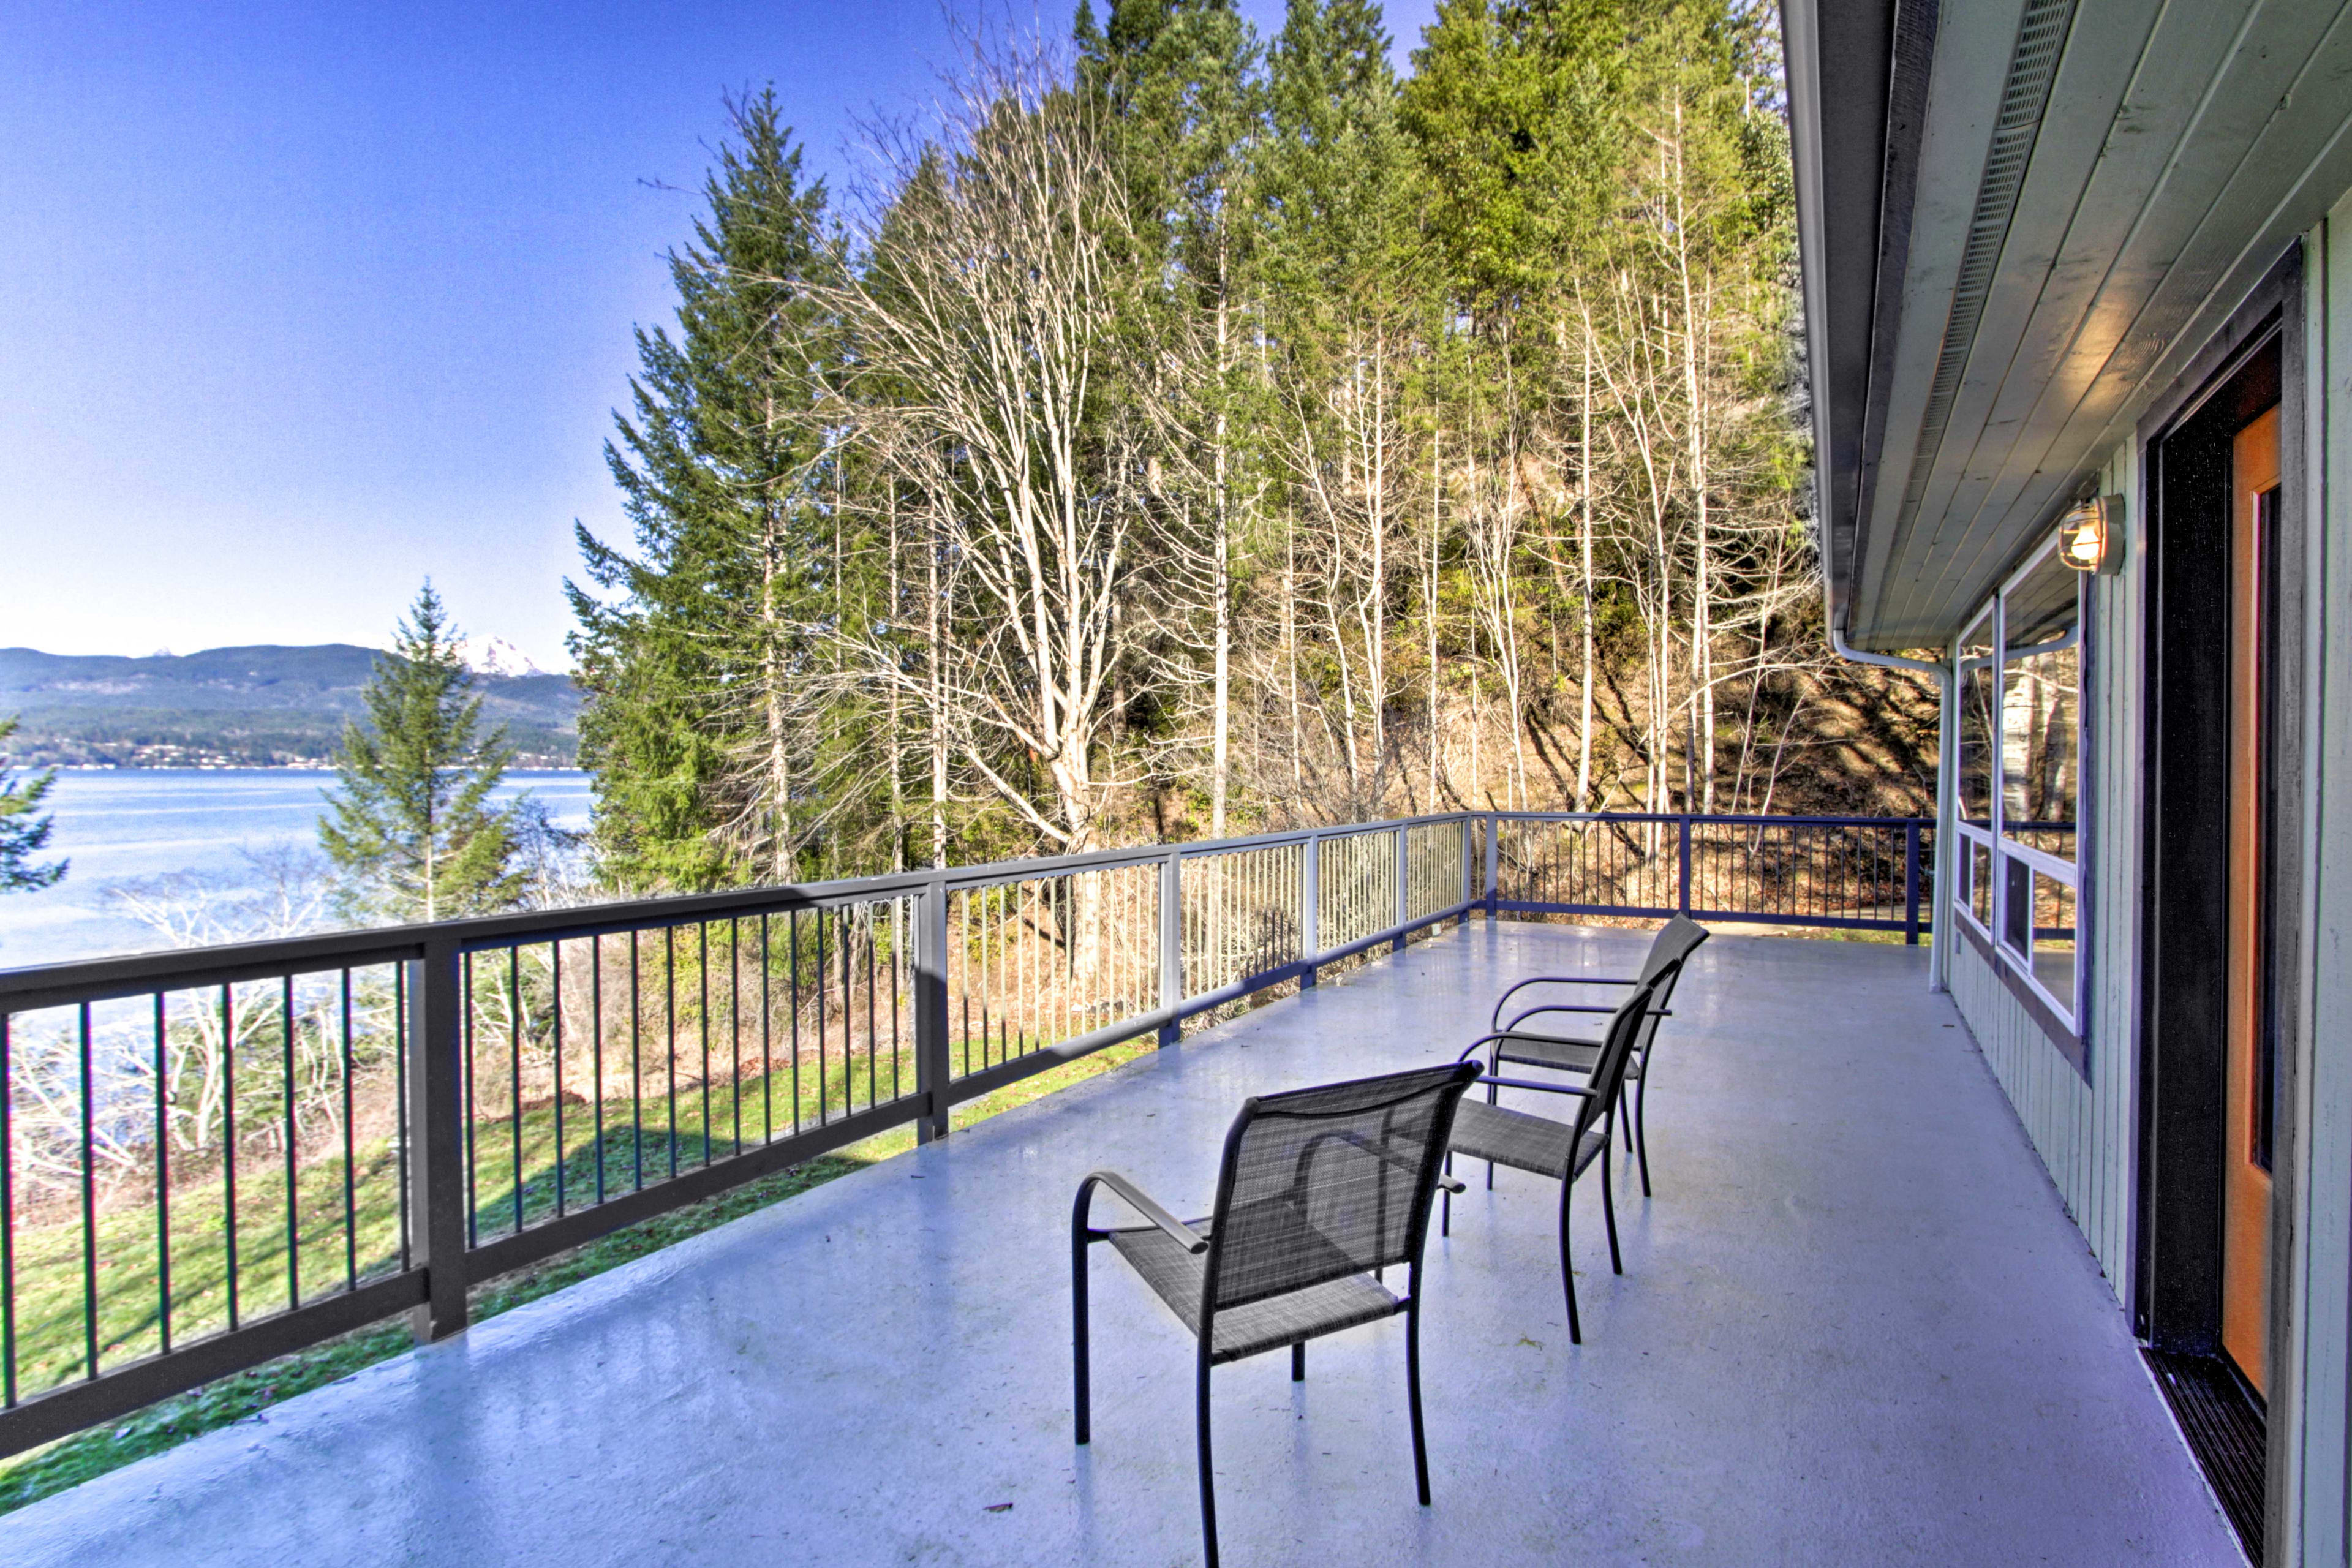 Stunning views and fresh mountain air await on the deck.